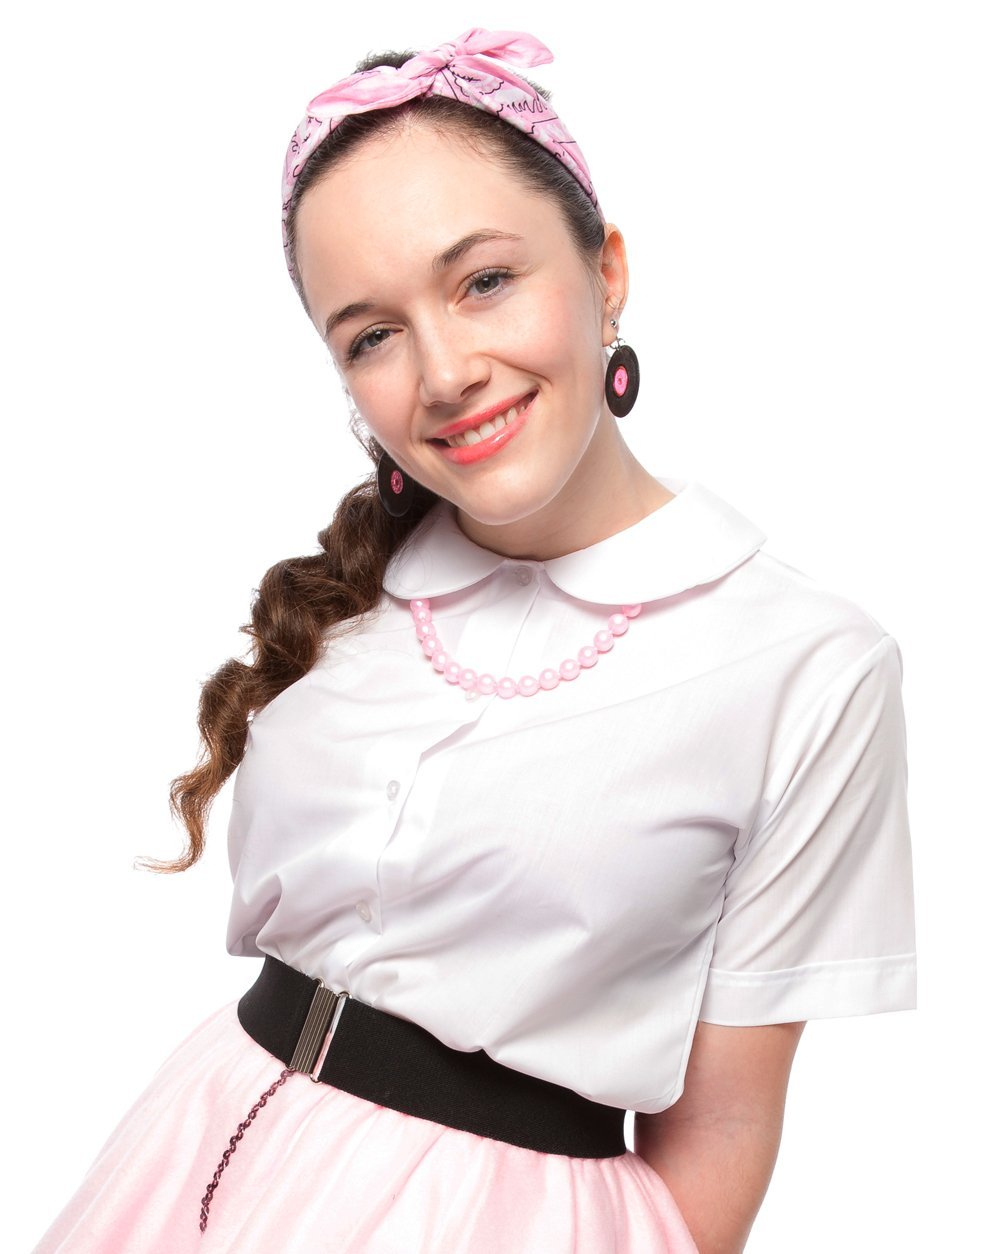 Peter Pan Blouse - Adult S (White) by Hey Viv !